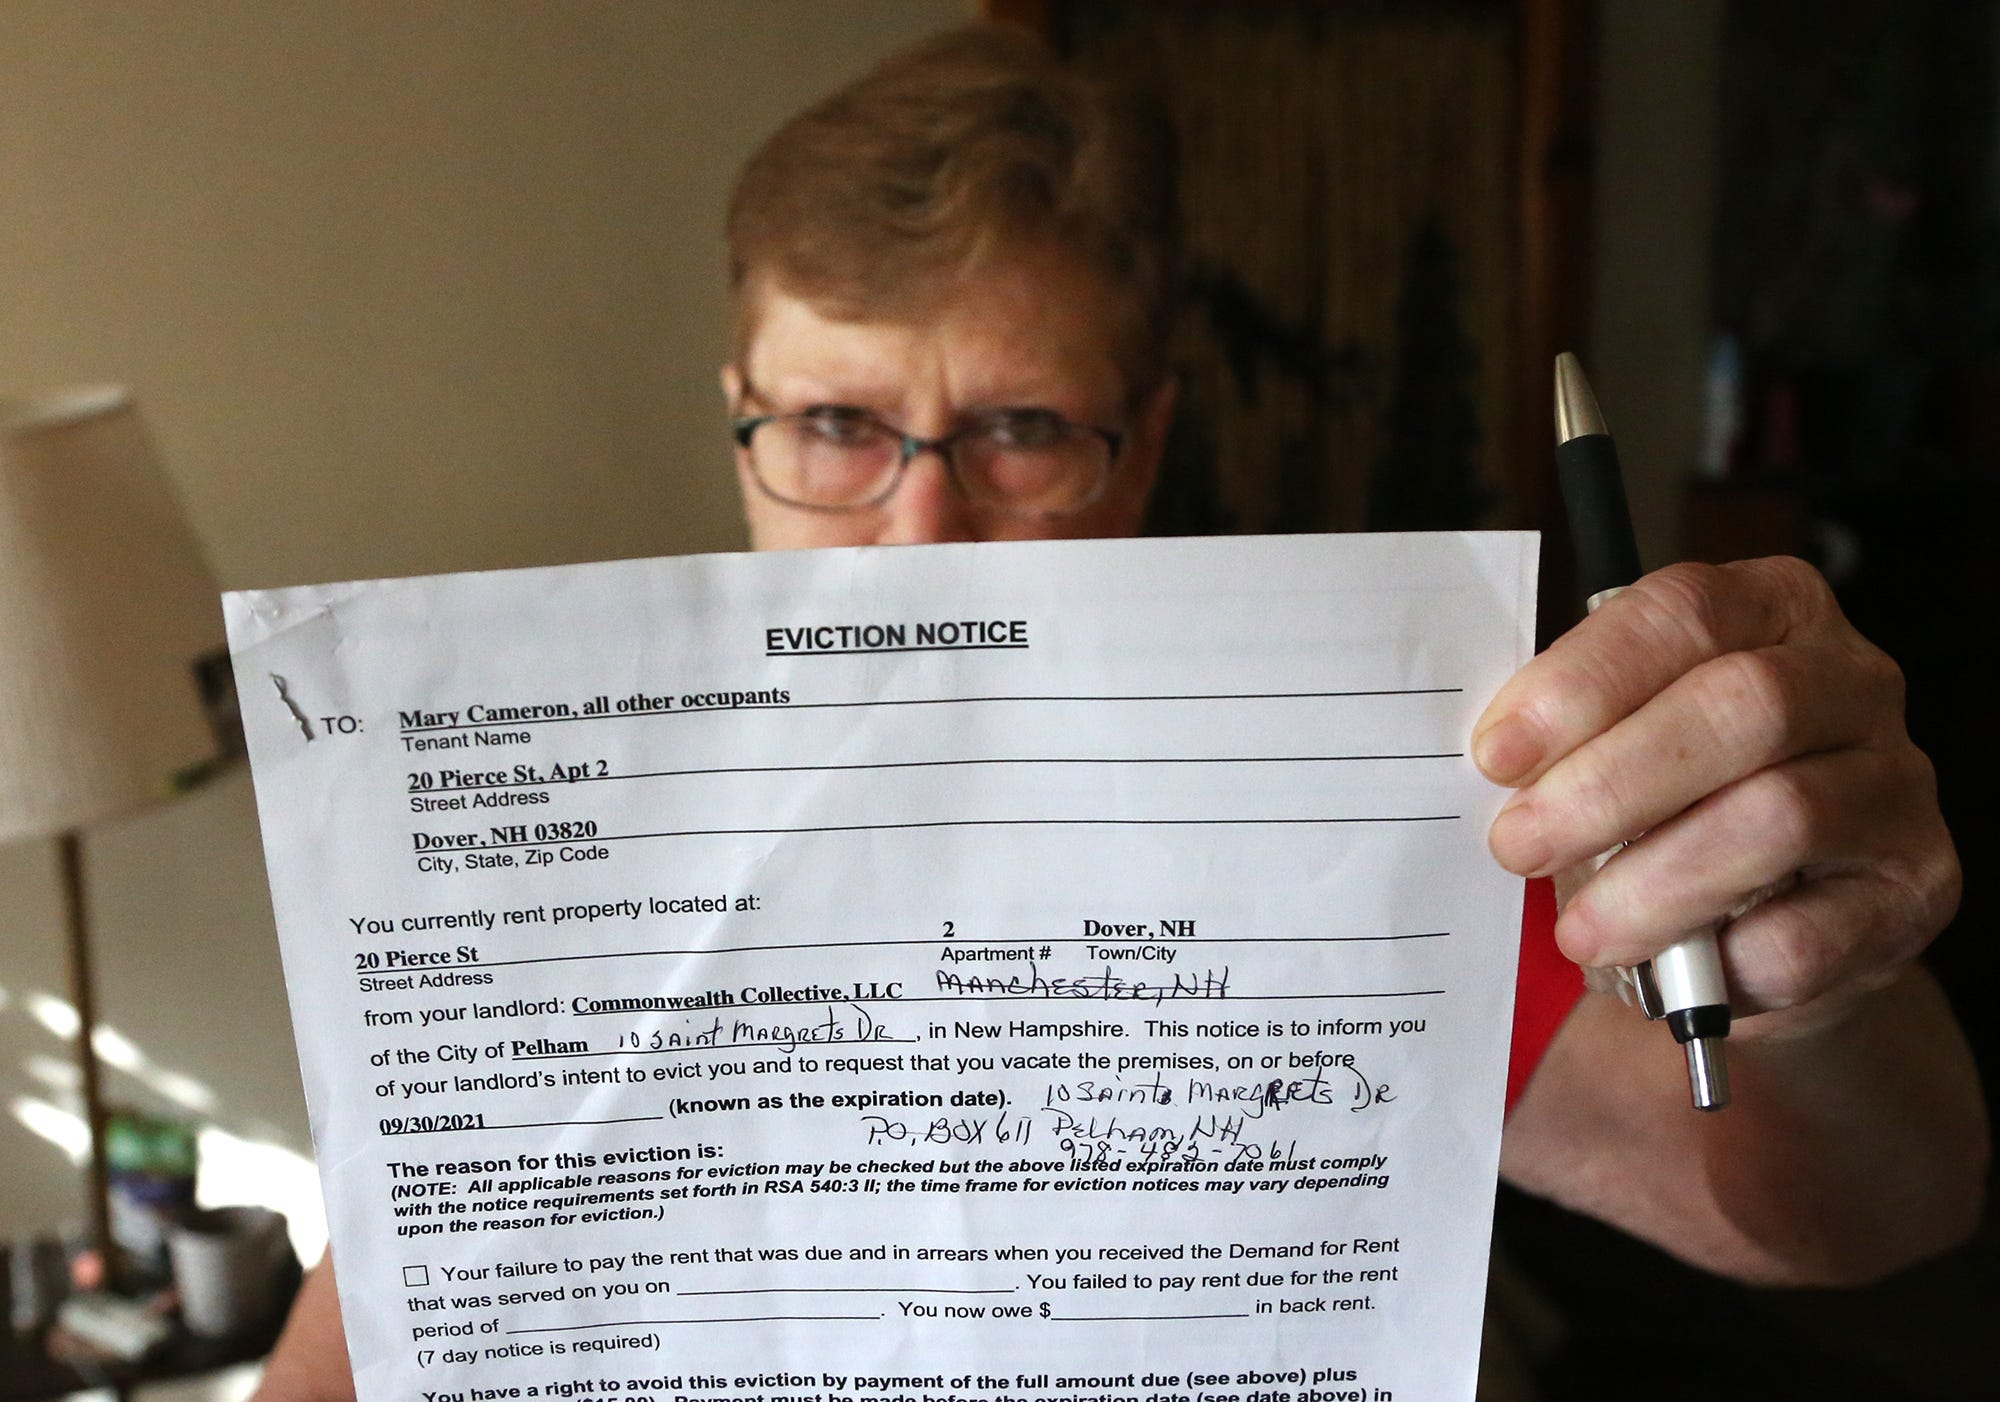 'They came in like we were nothing': New Hampshire woman with housing voucher evicted